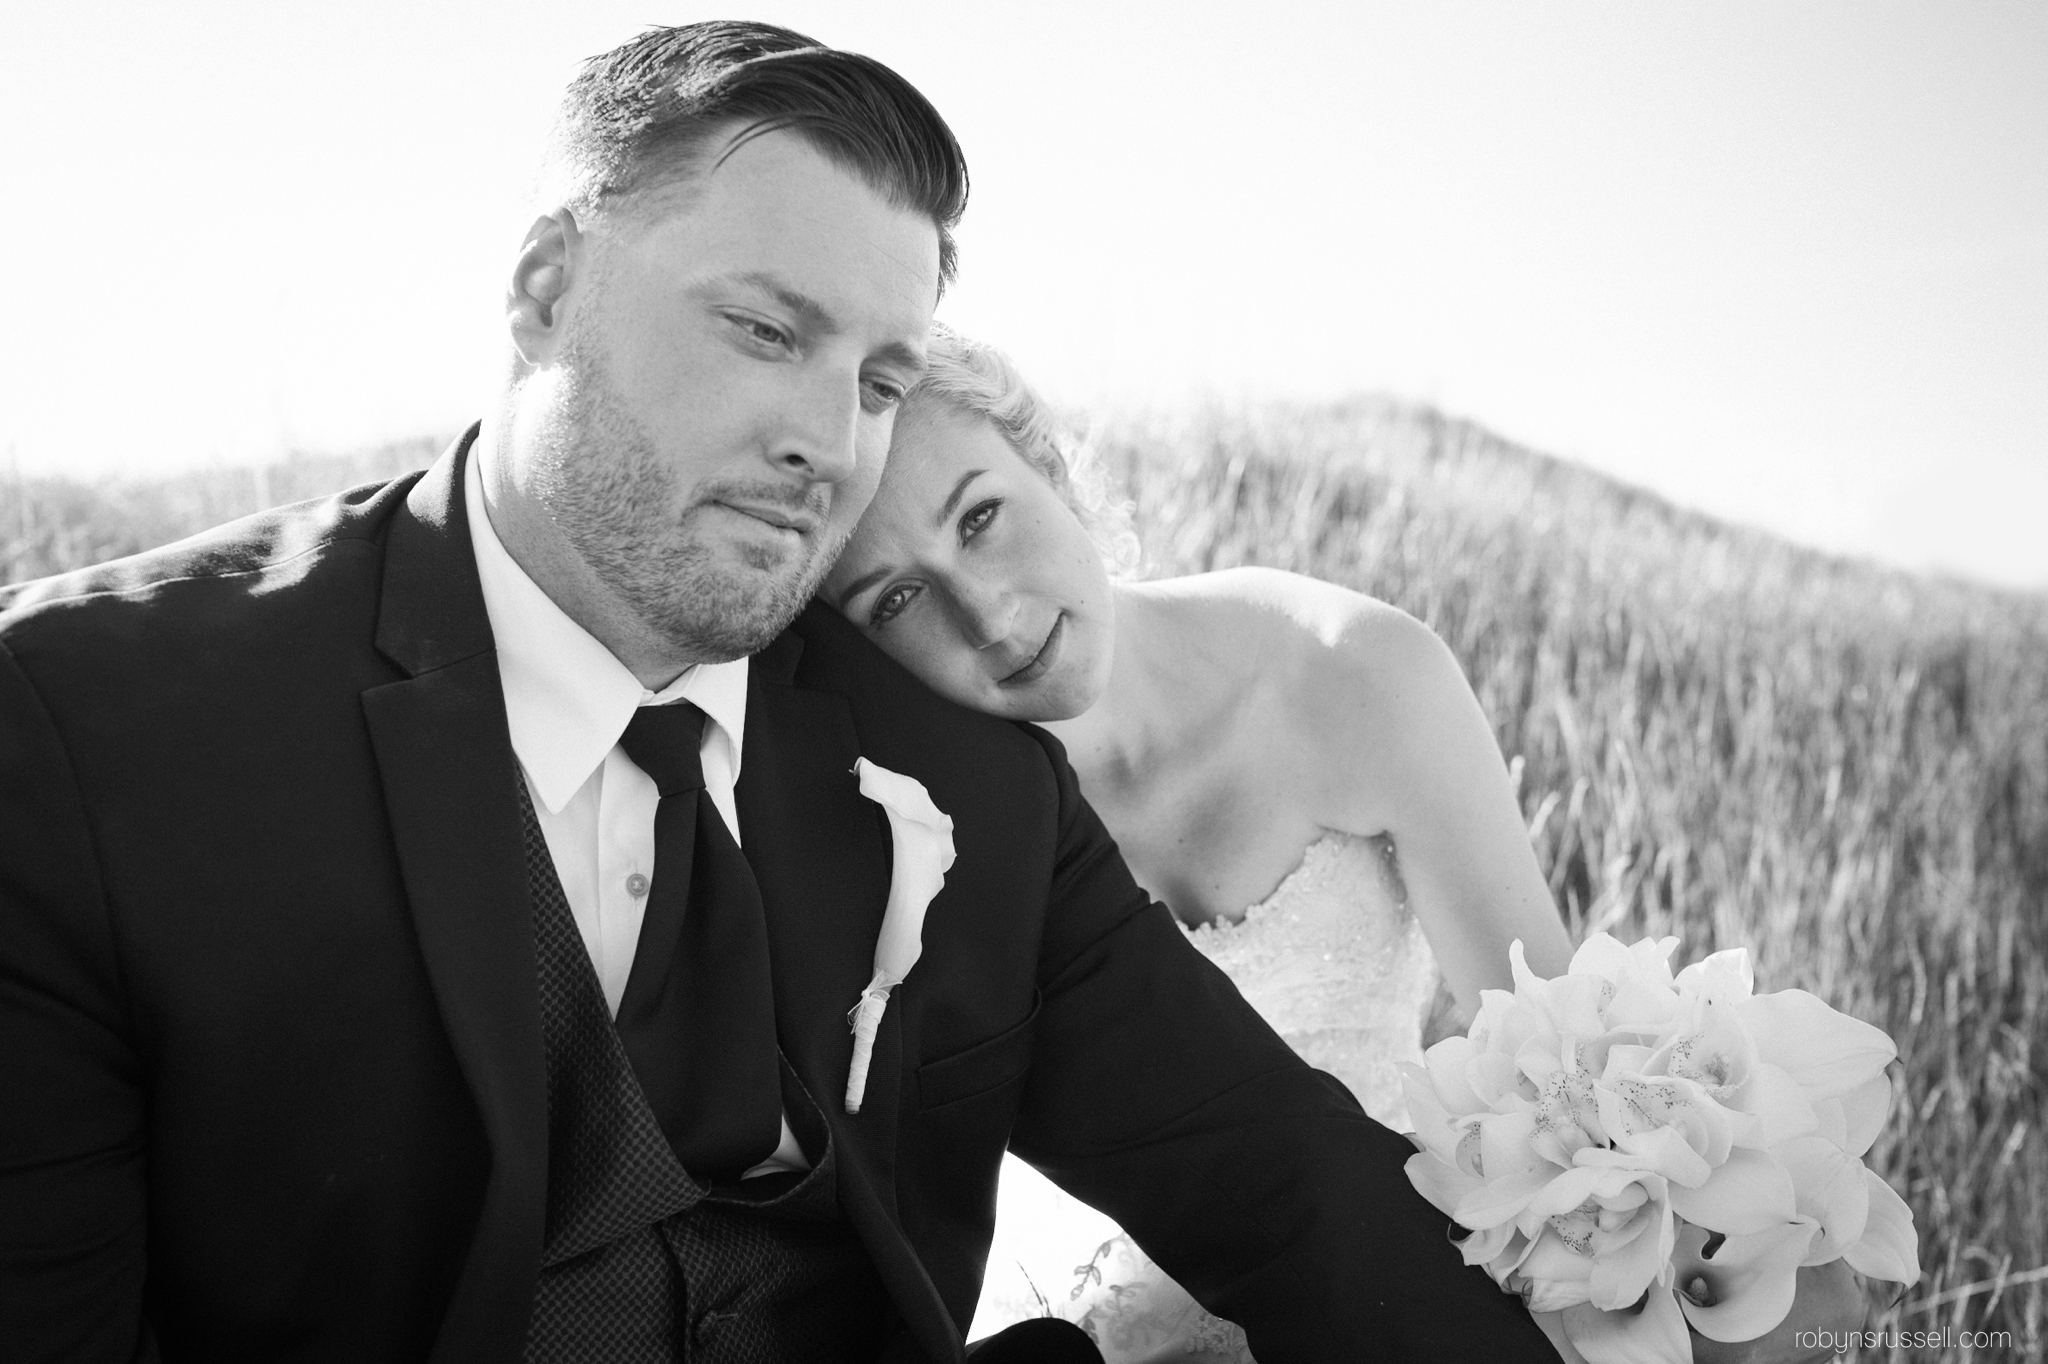 43-bride-and-groom-moody-black-and-white.jpg